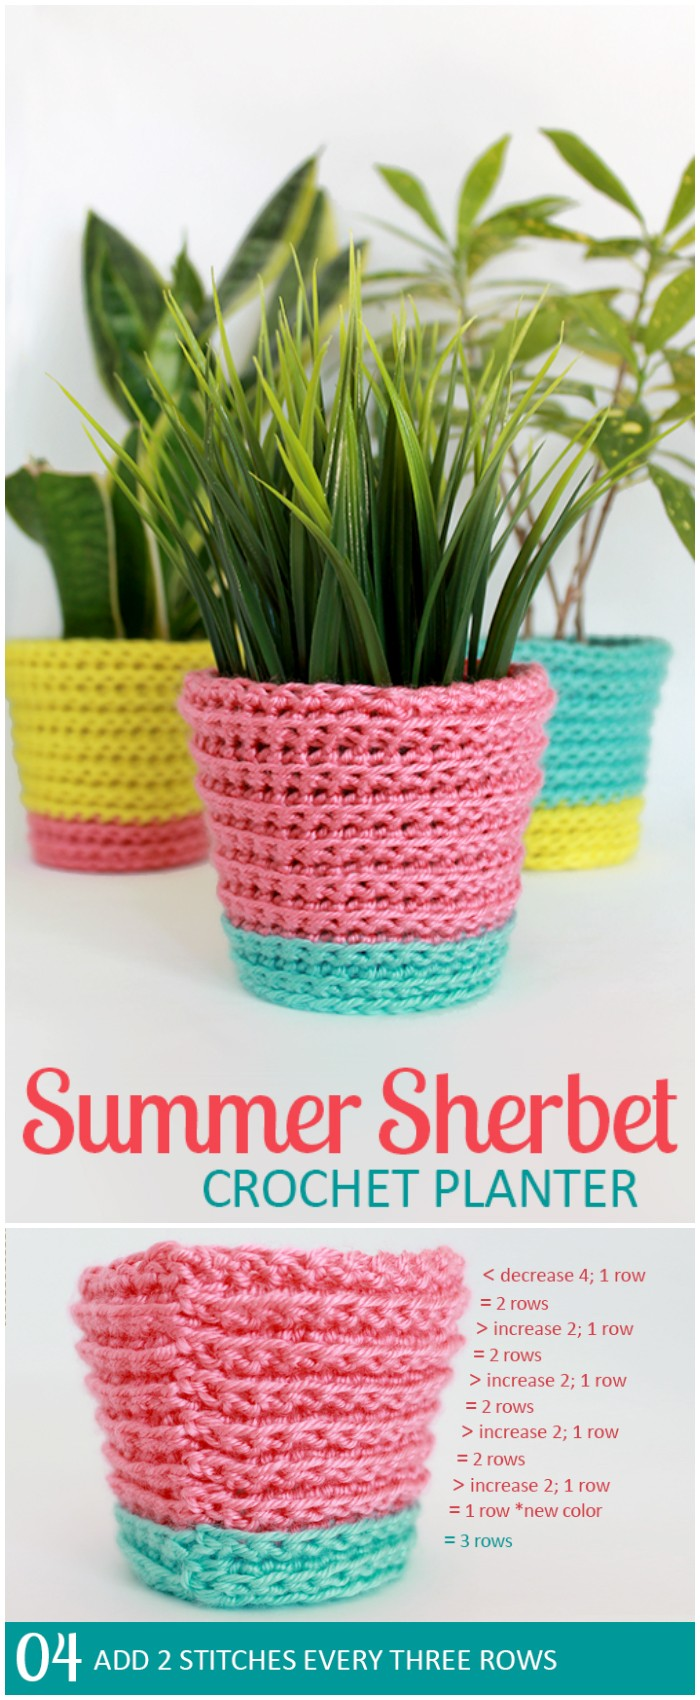 Summer Sherbet Crochet Planter - crochet home decor